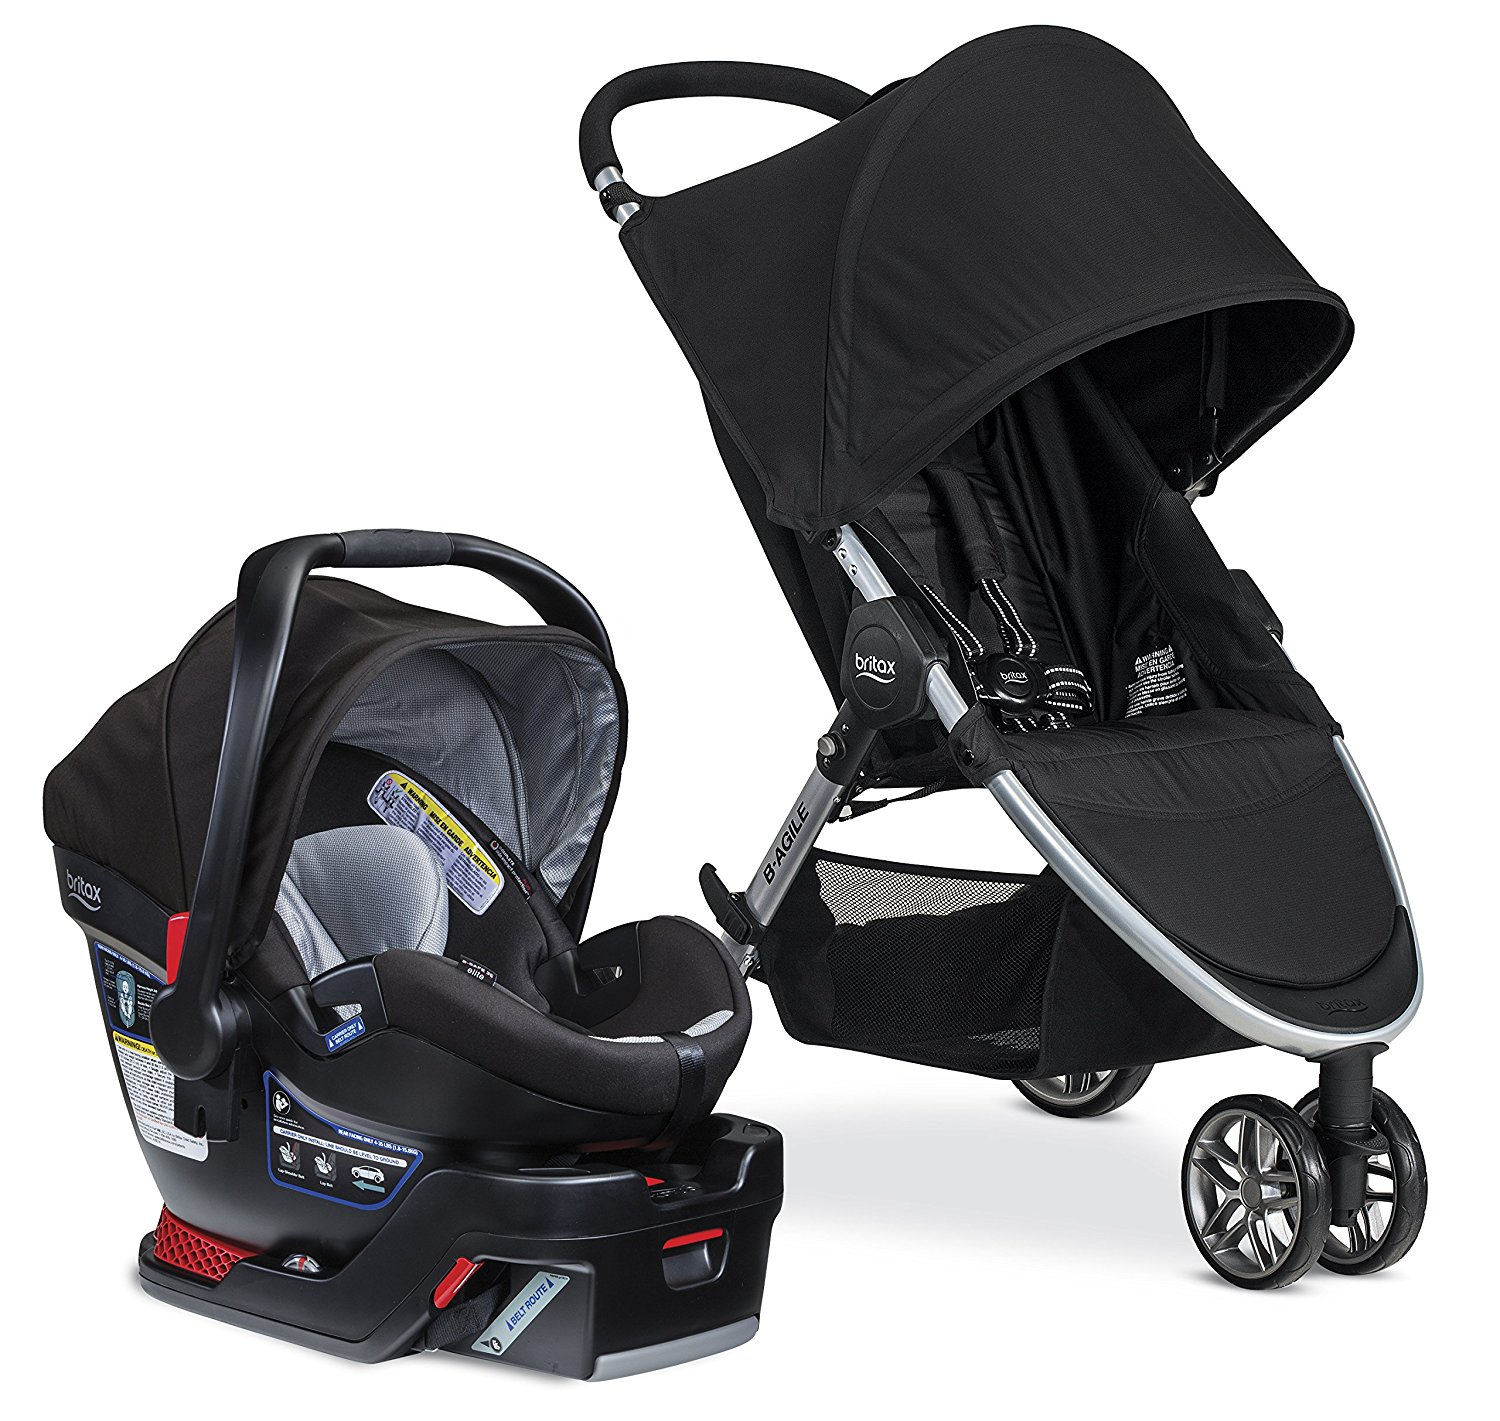 Up To 30% Off Select Britax Car Seats and Strollers Today ...